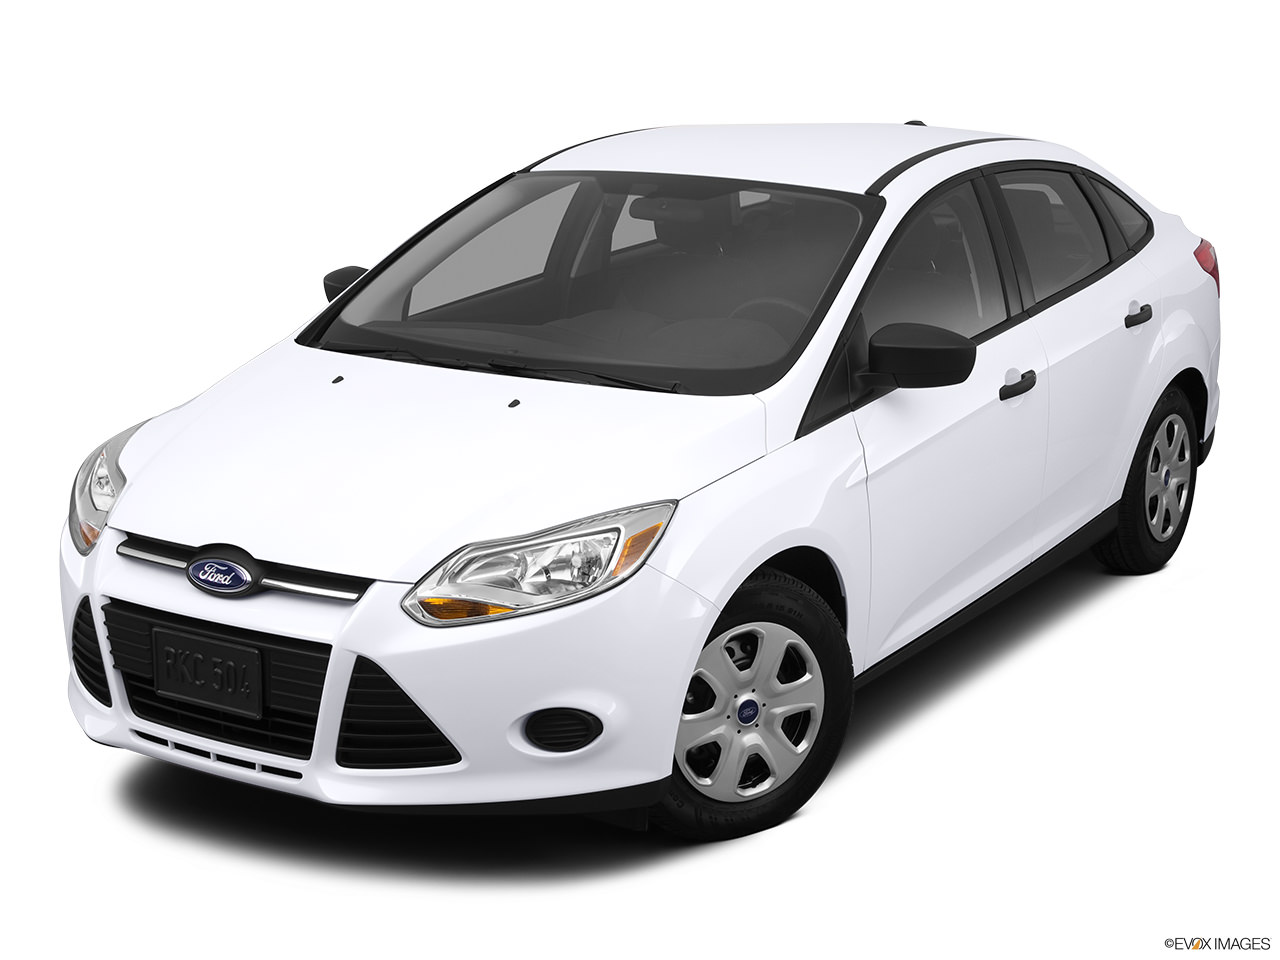 buyers guide    ford focus yourmechanic advice